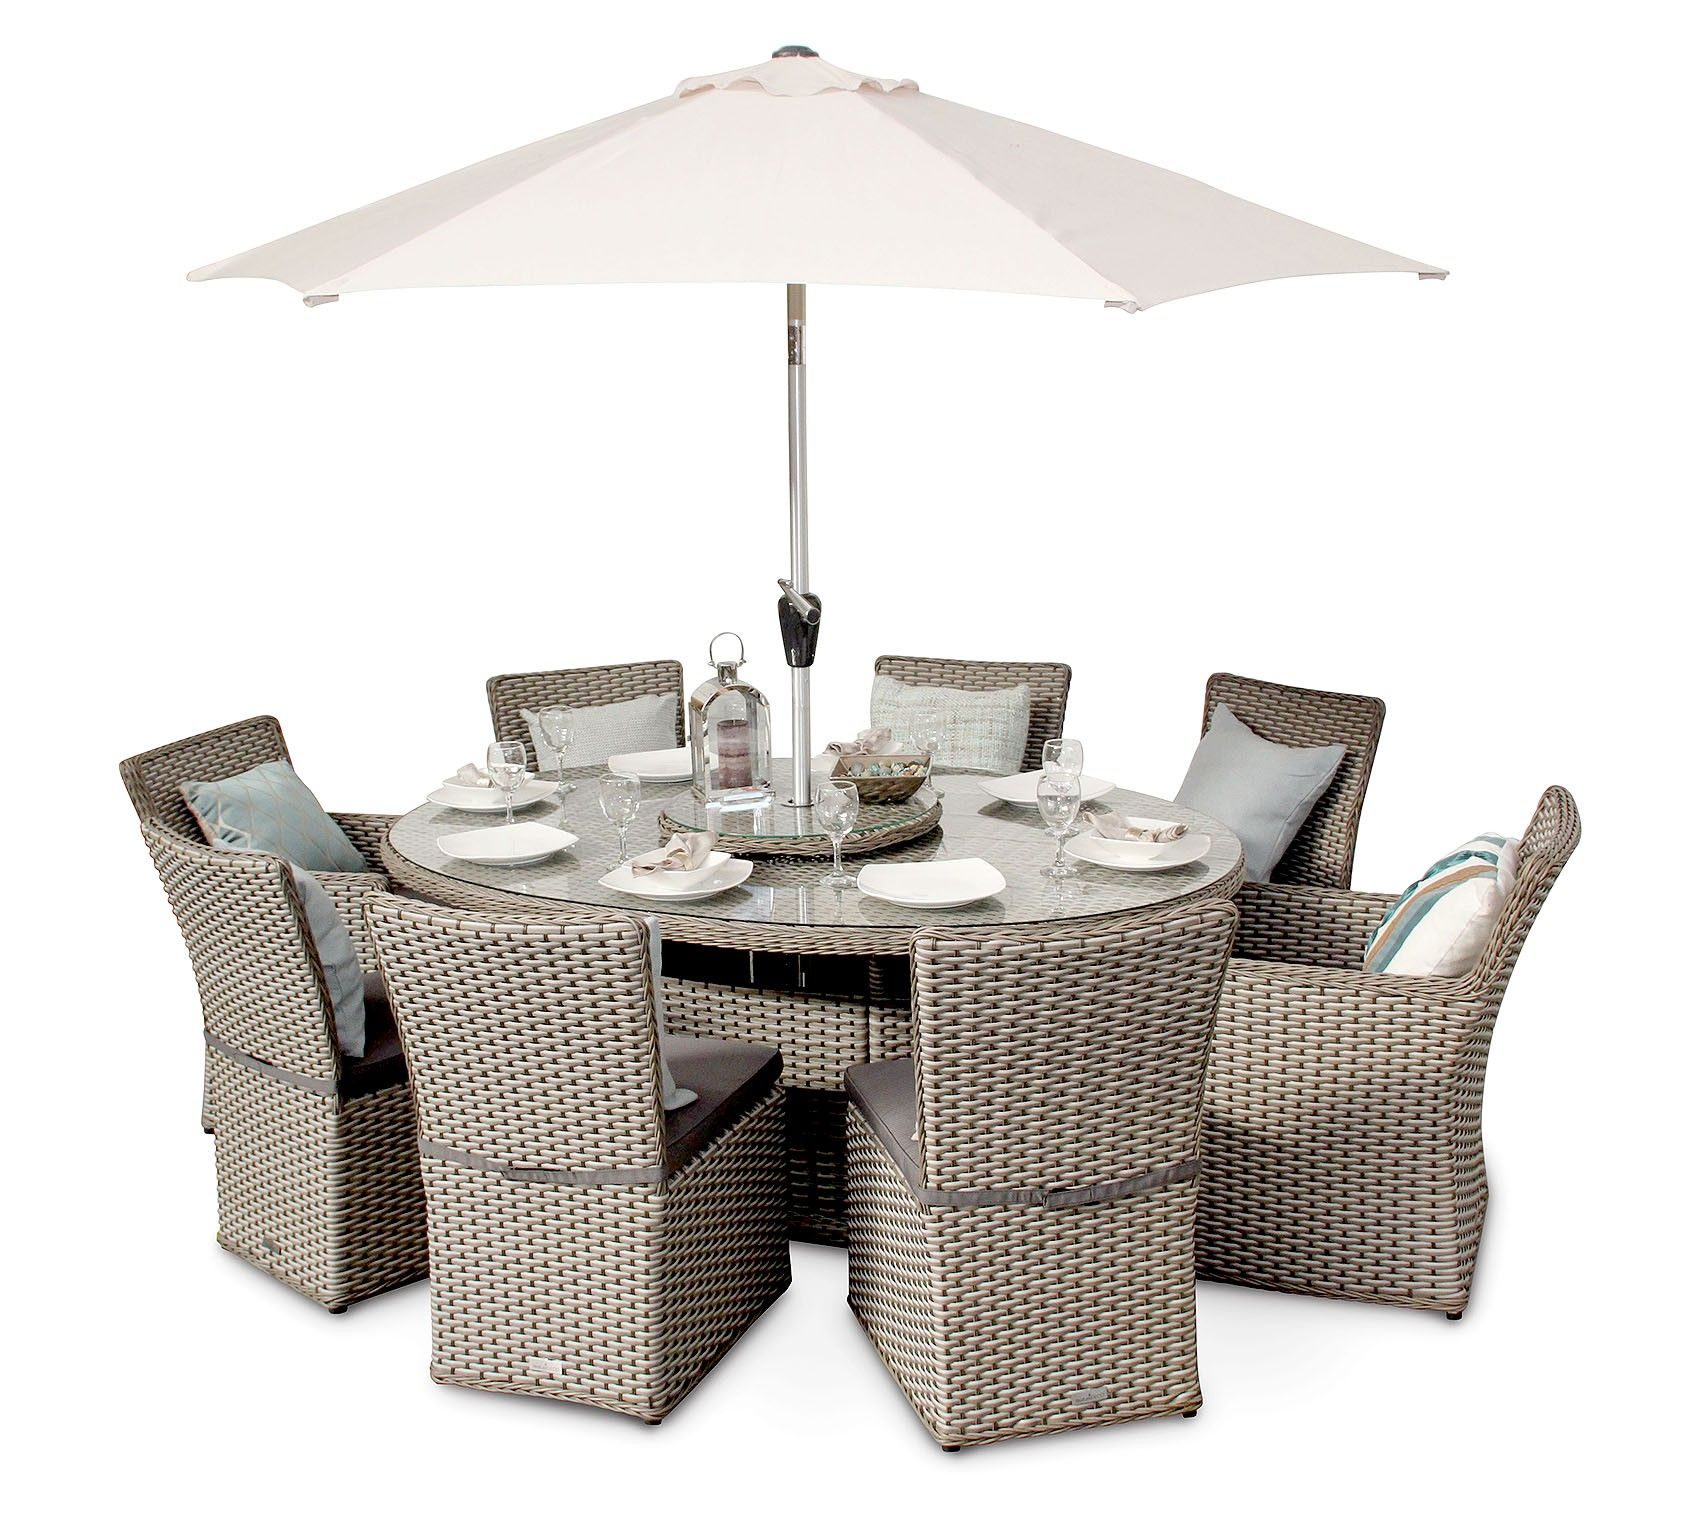 Richmond 8 Seater Rattan Oval Garden Dining Table Set Whitewash Grey